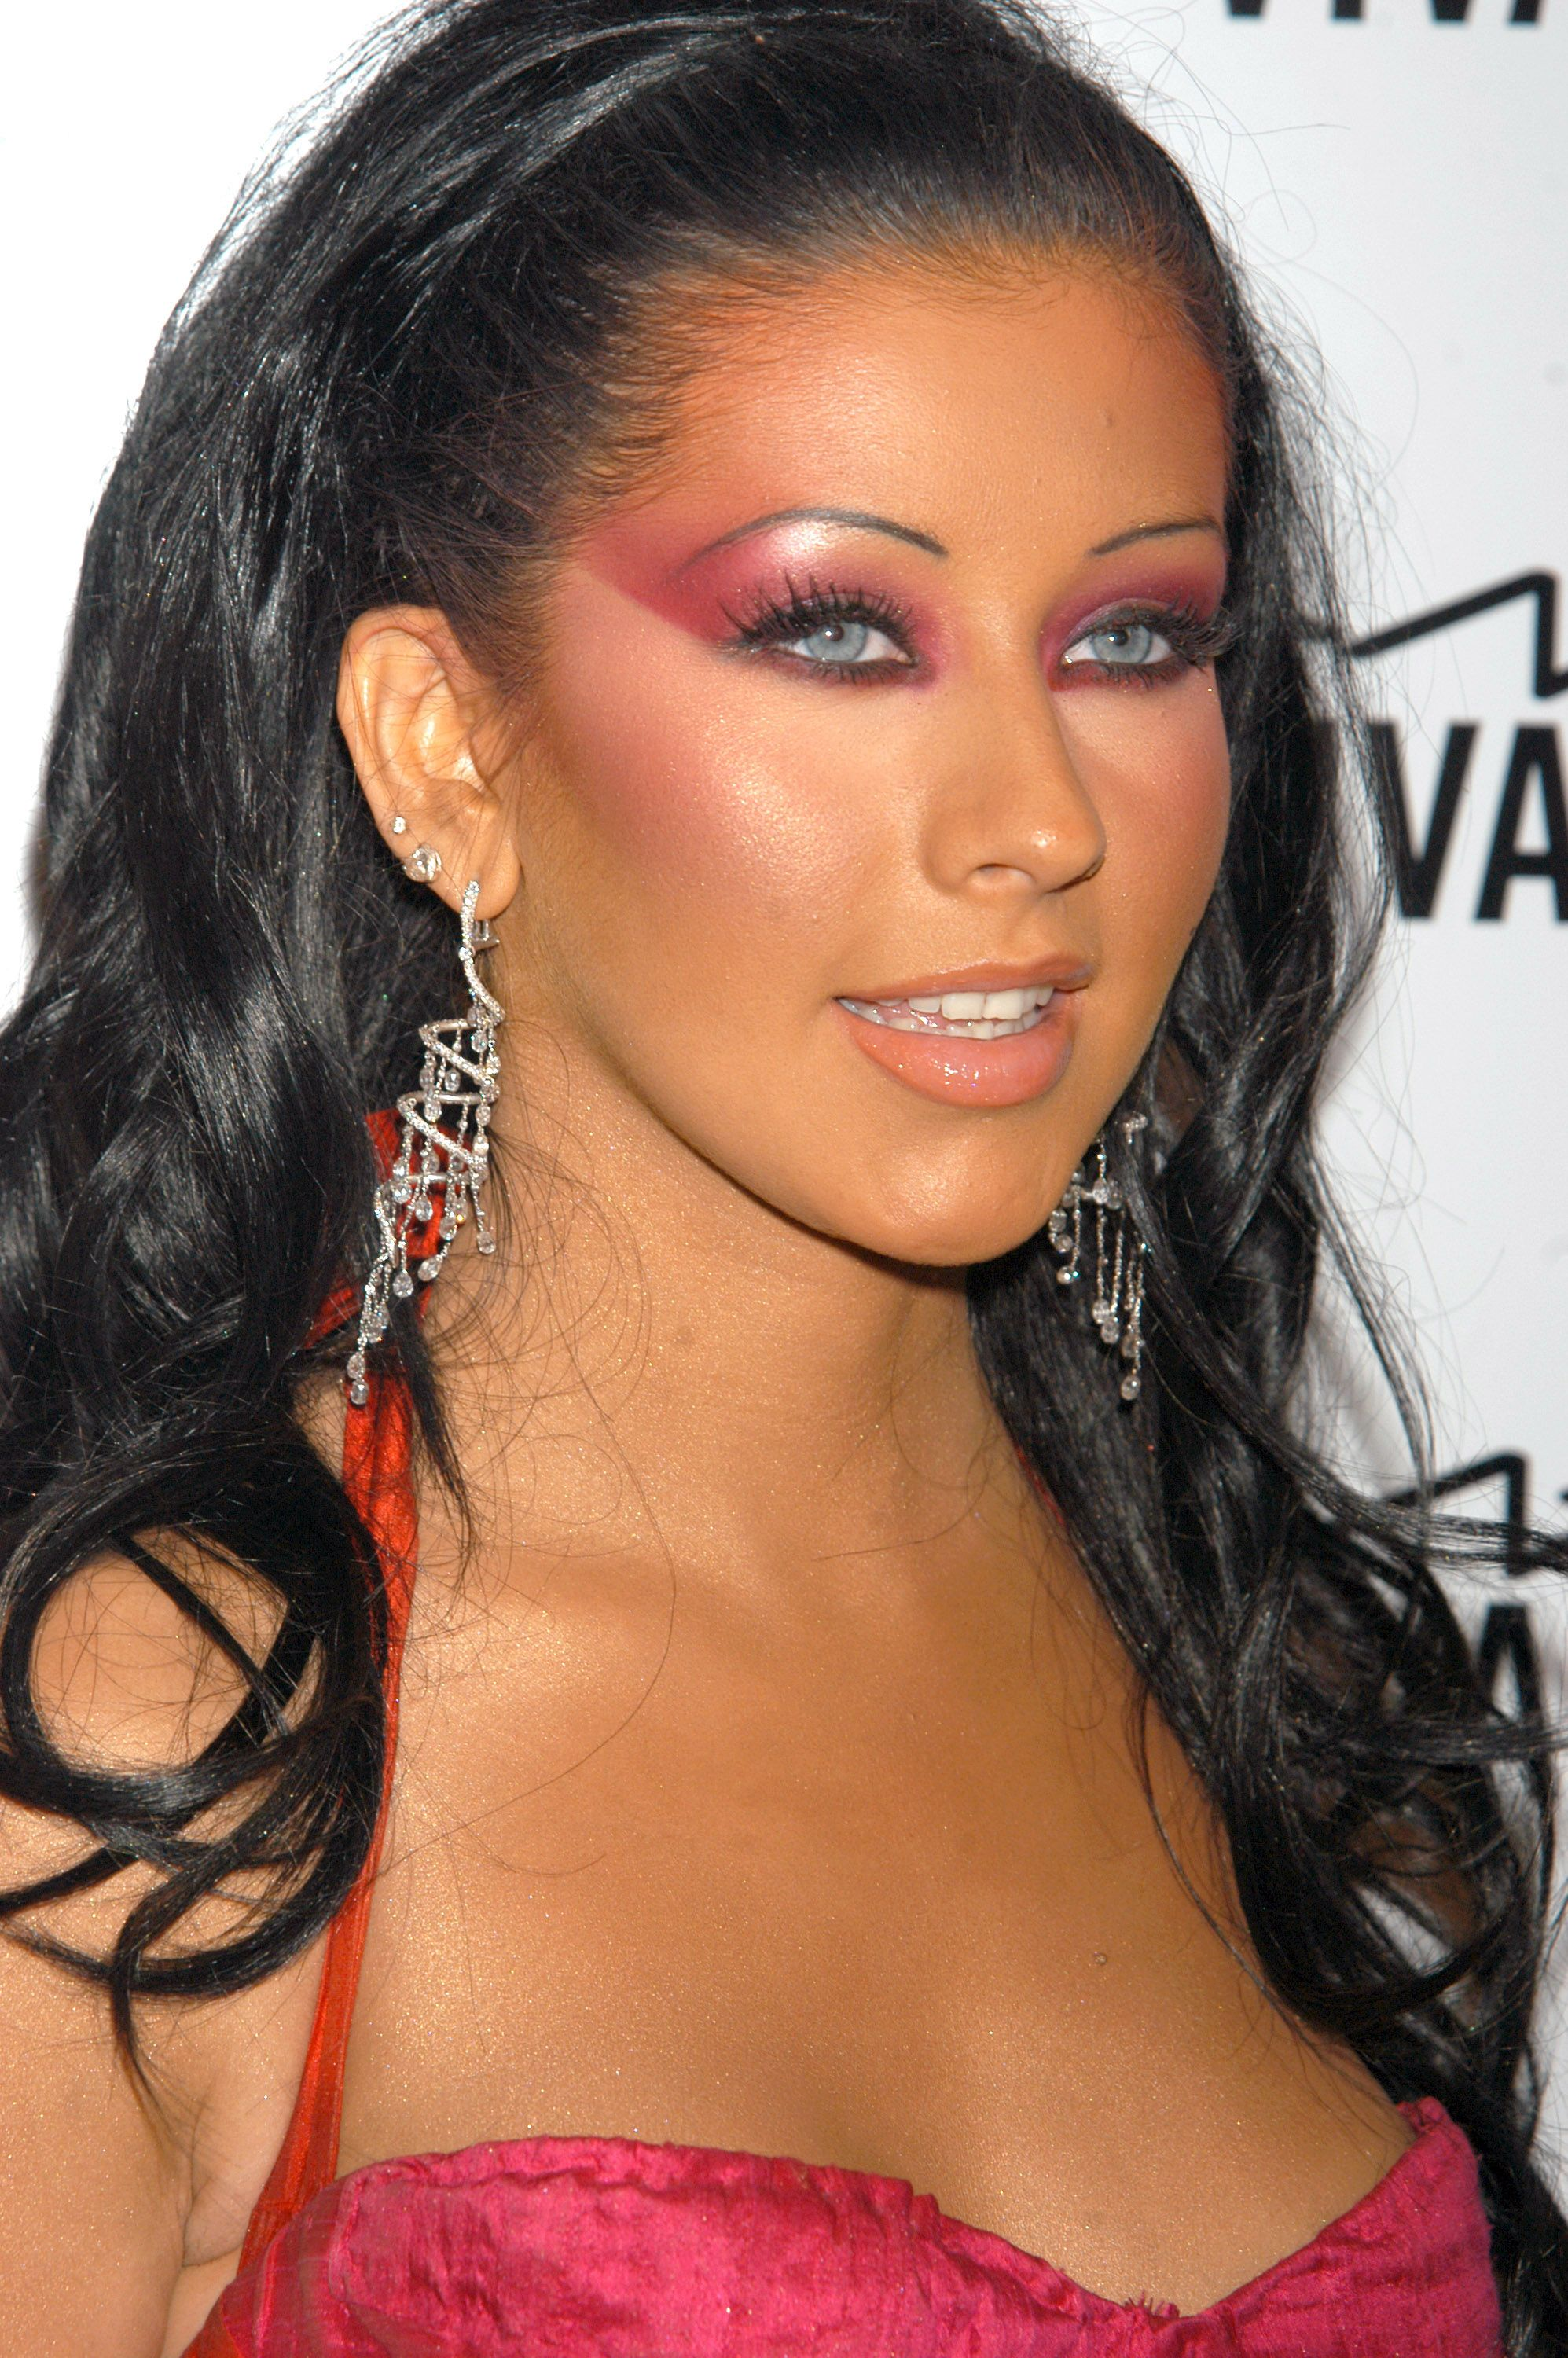 2000s Beauty Trends - Hairstyles and Makeup Trends from the 2000s